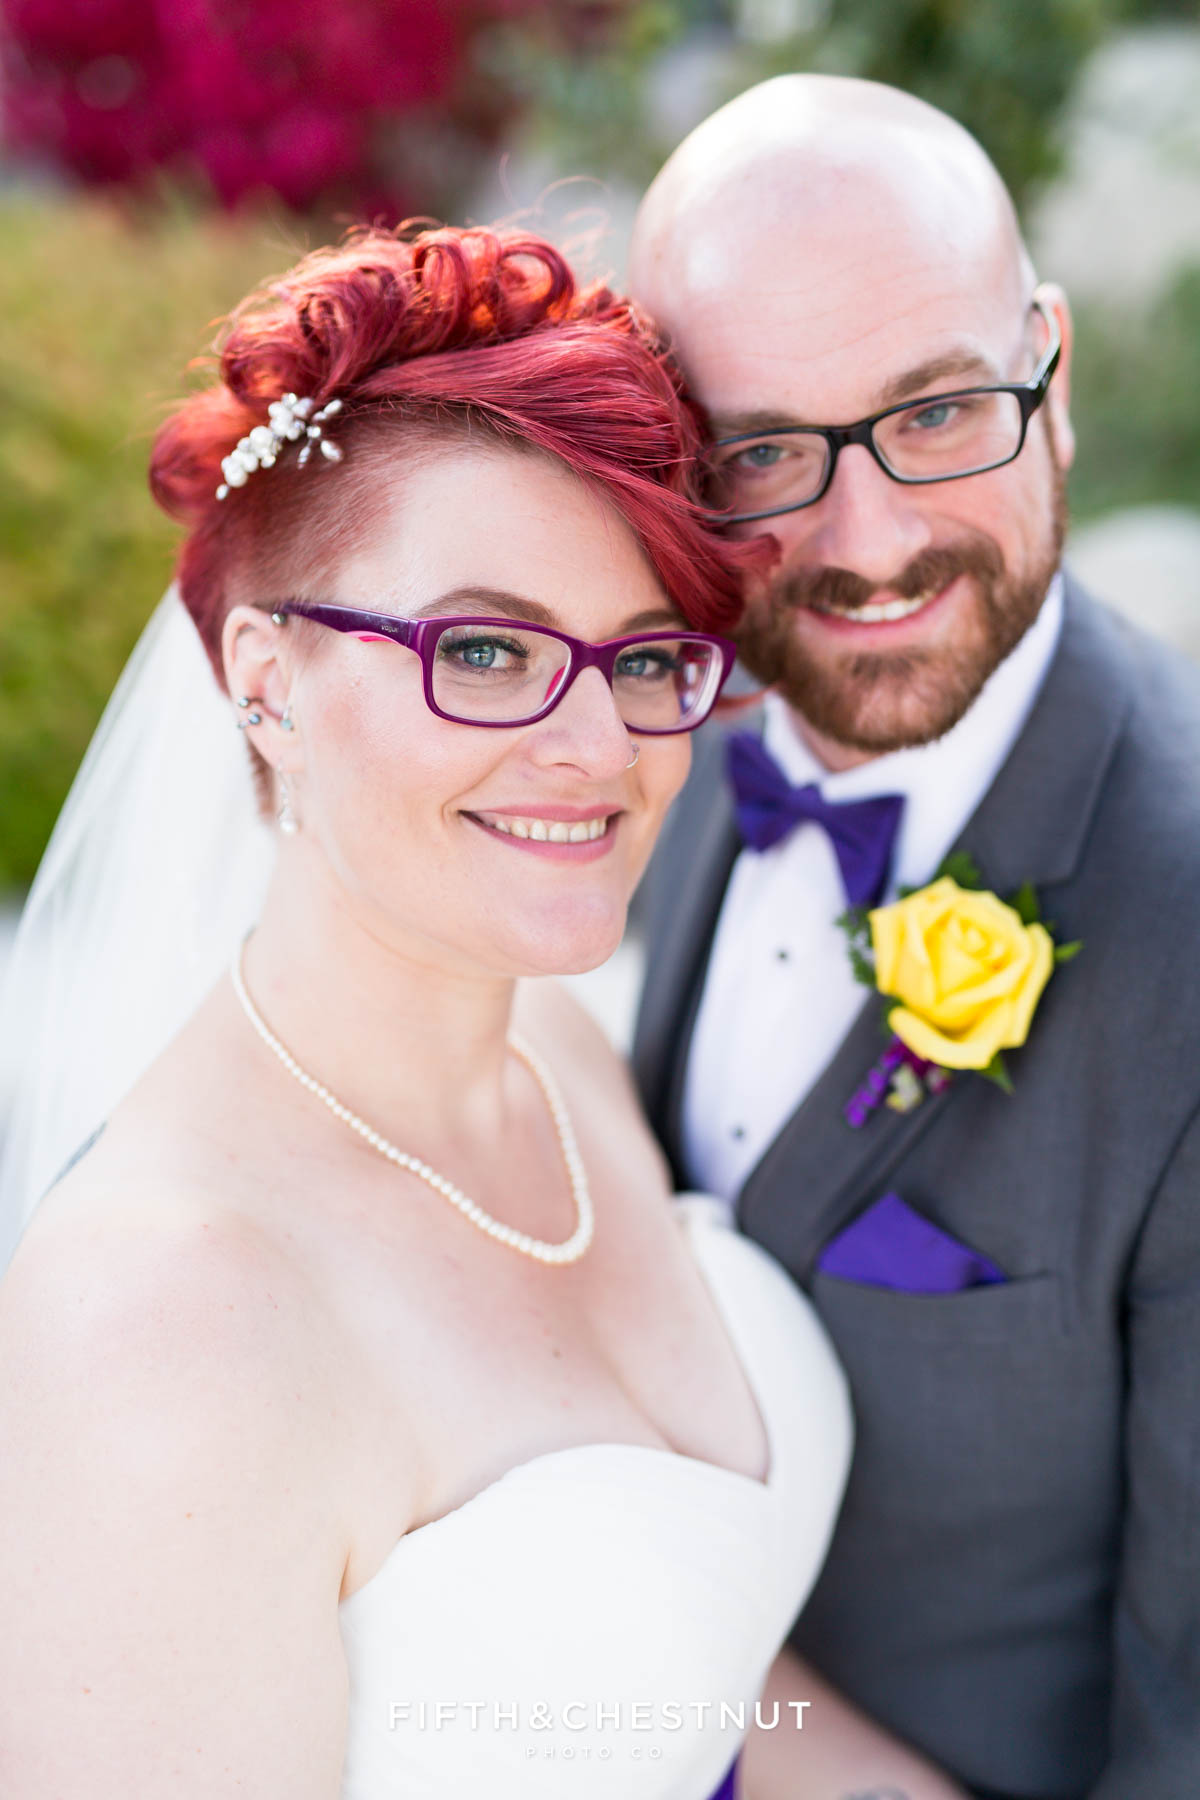 Bride and groom happily smile together at their Bright fall wedding at the Grove by Reno Wedding Photographer